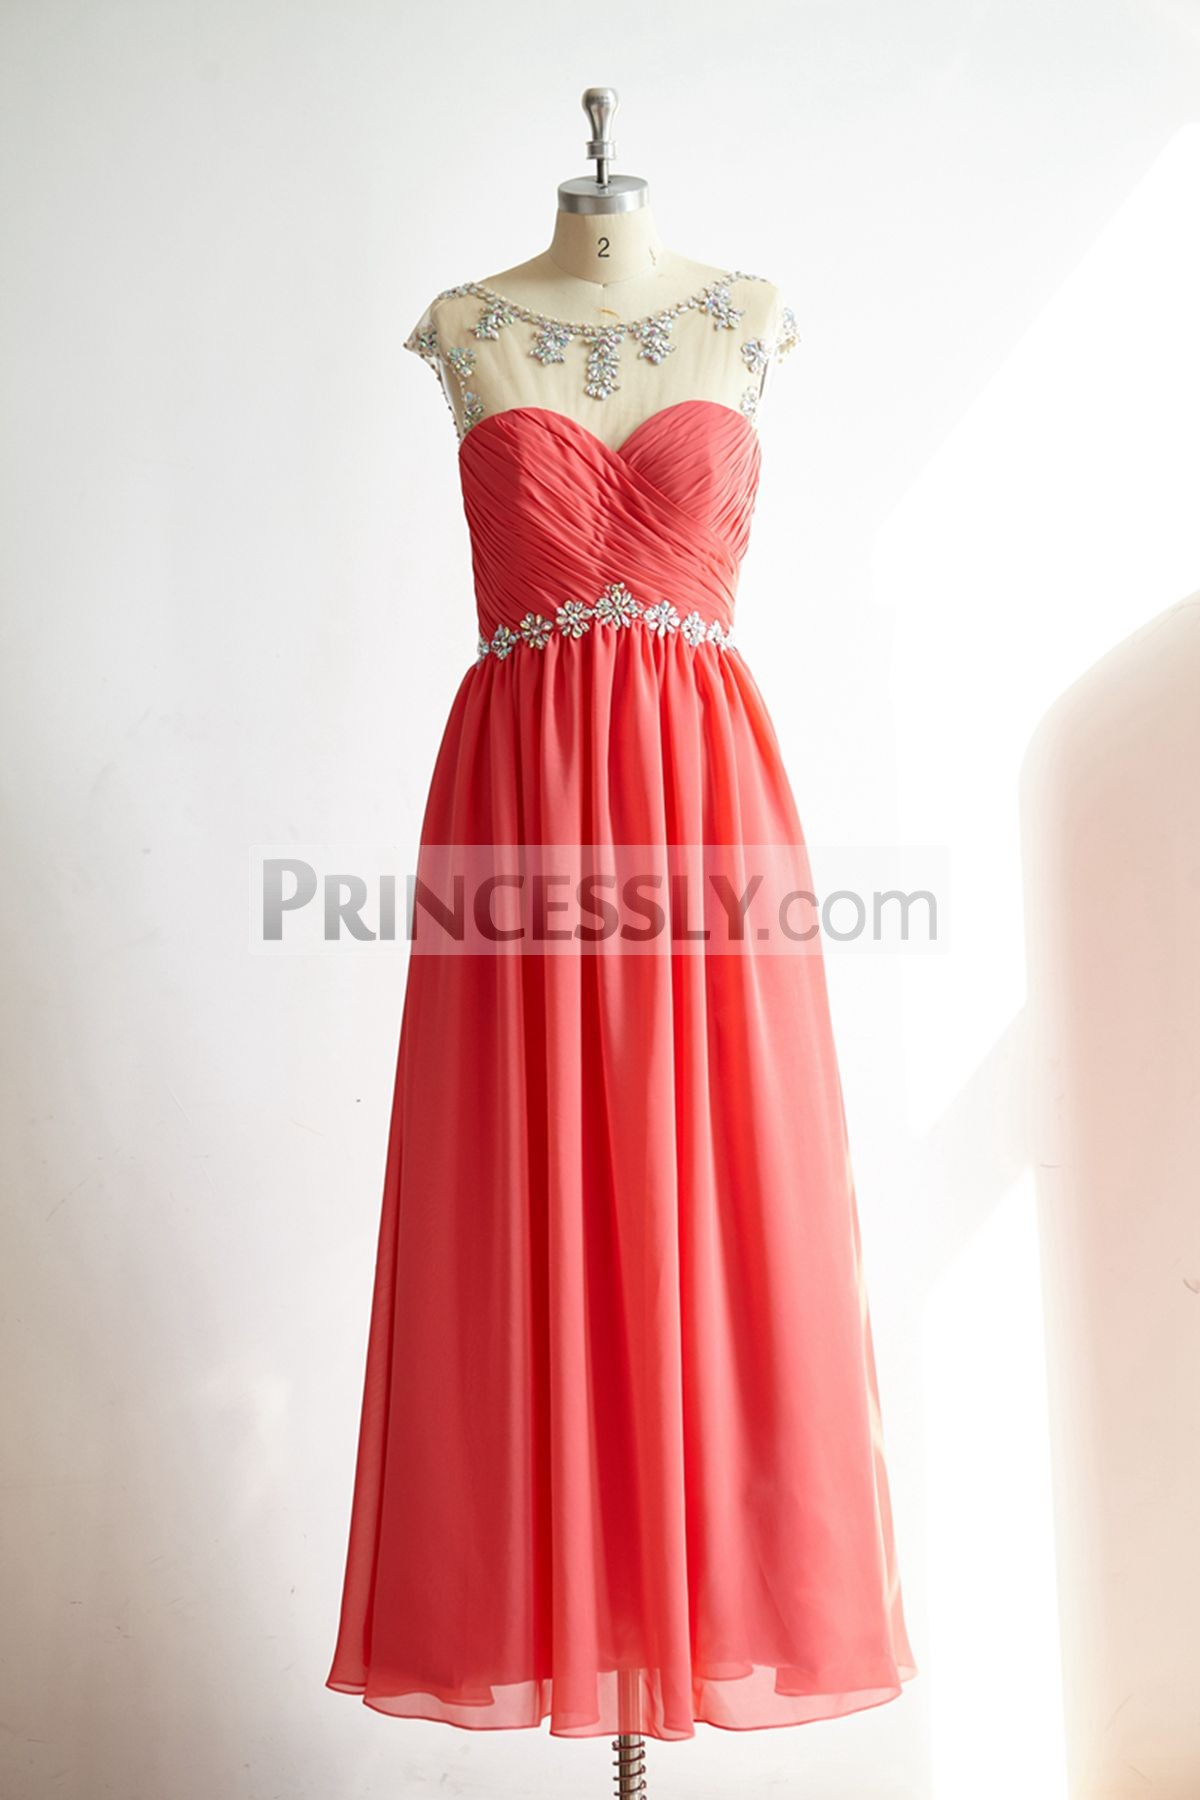 Princessly.com-K1000318-Sheer Illusion Sexy Backless Coral Chiffon Long Prom Party Dress-31